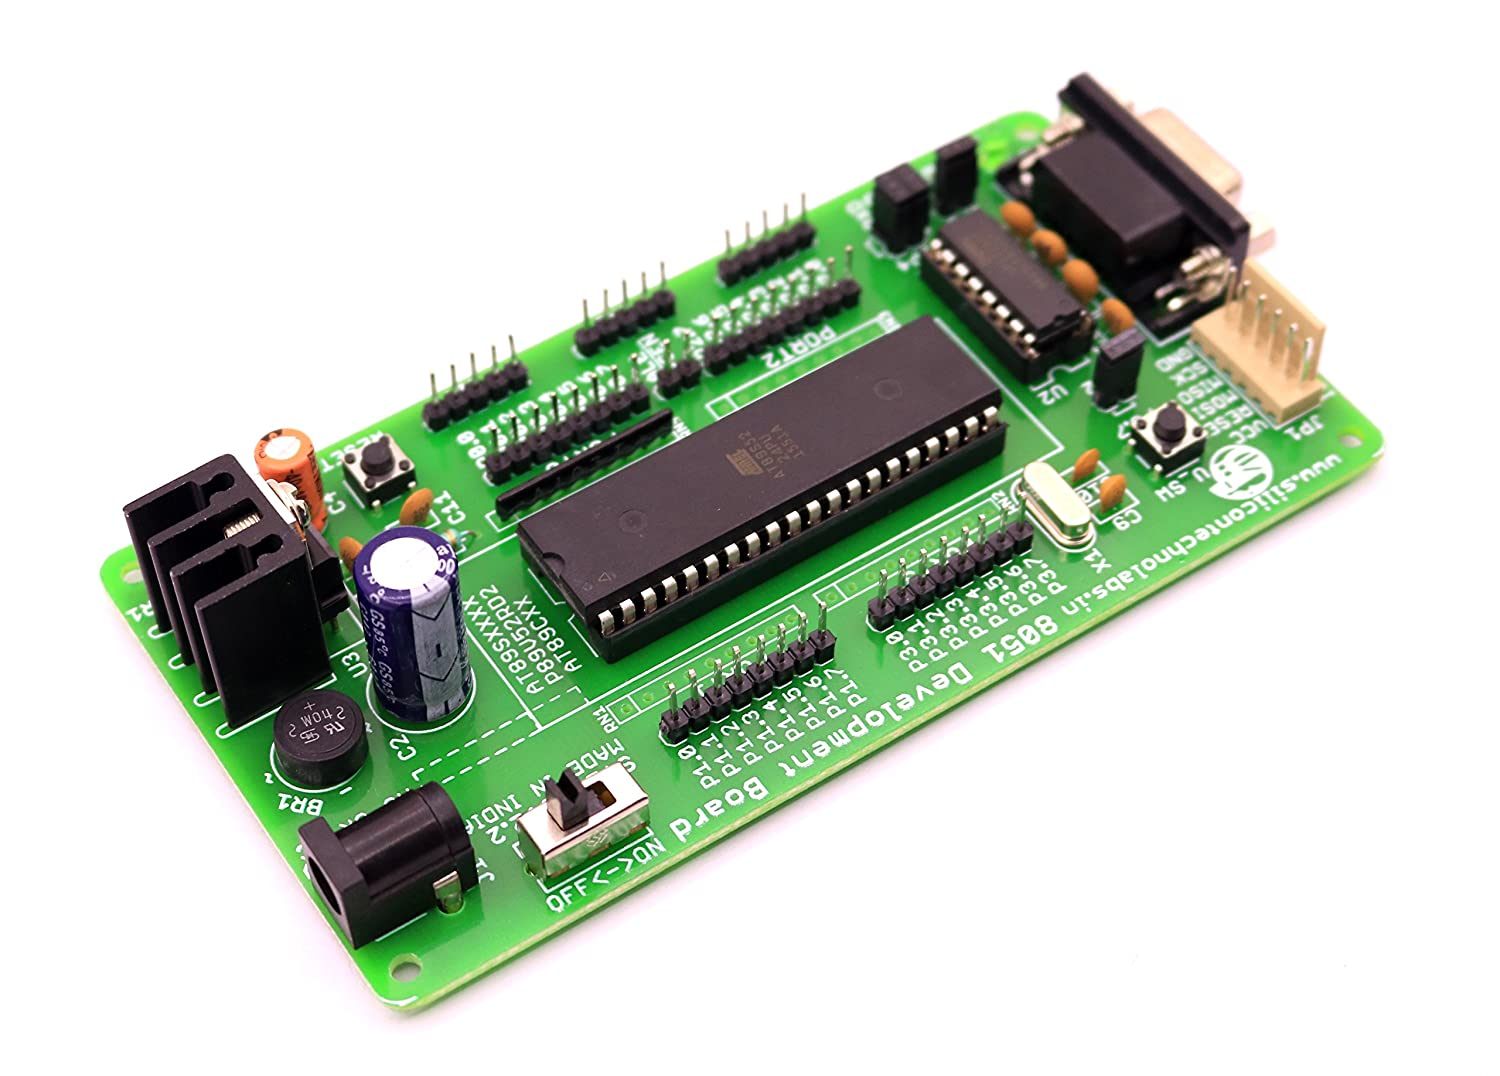 Silicon Technolabs Atmel 8051 Project Development Board On At89s52max232 Support At89sxxp89v51rd2sst89e516rd Microcontroller Based Schematics System Circuit Buy At89s52 Max232 At89sxx P89v51rd2 Sst89e516rd Online At Low Prices